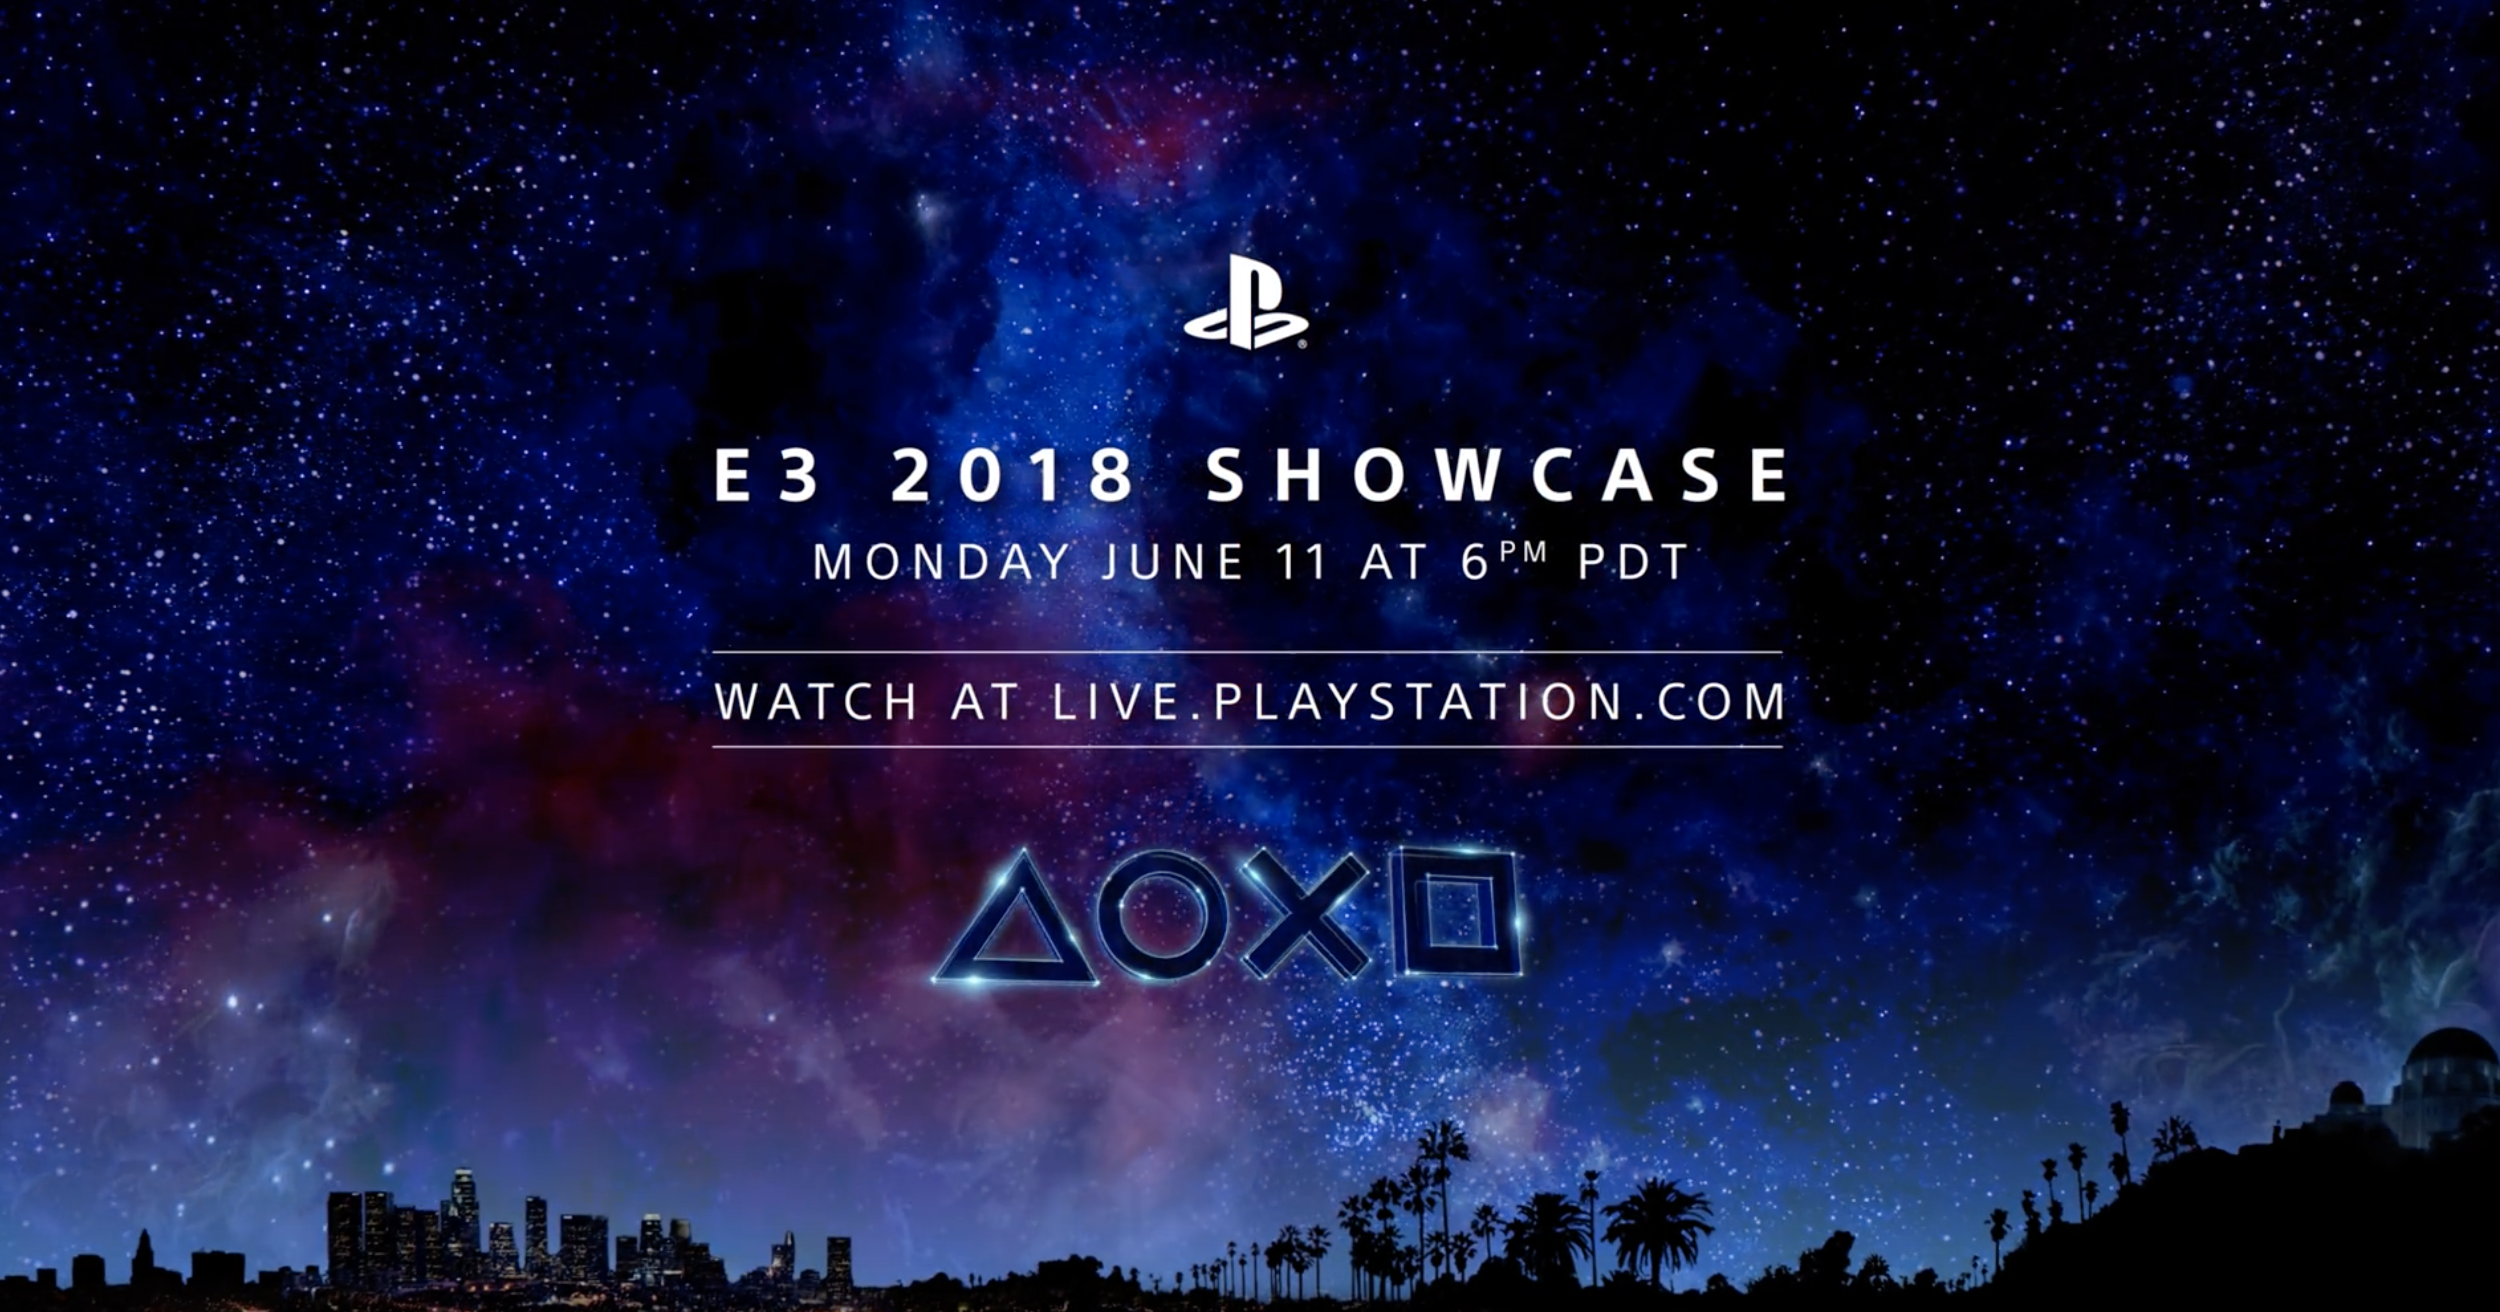 Sony's E3 2018 PlayStation Showcase: start time, live stream